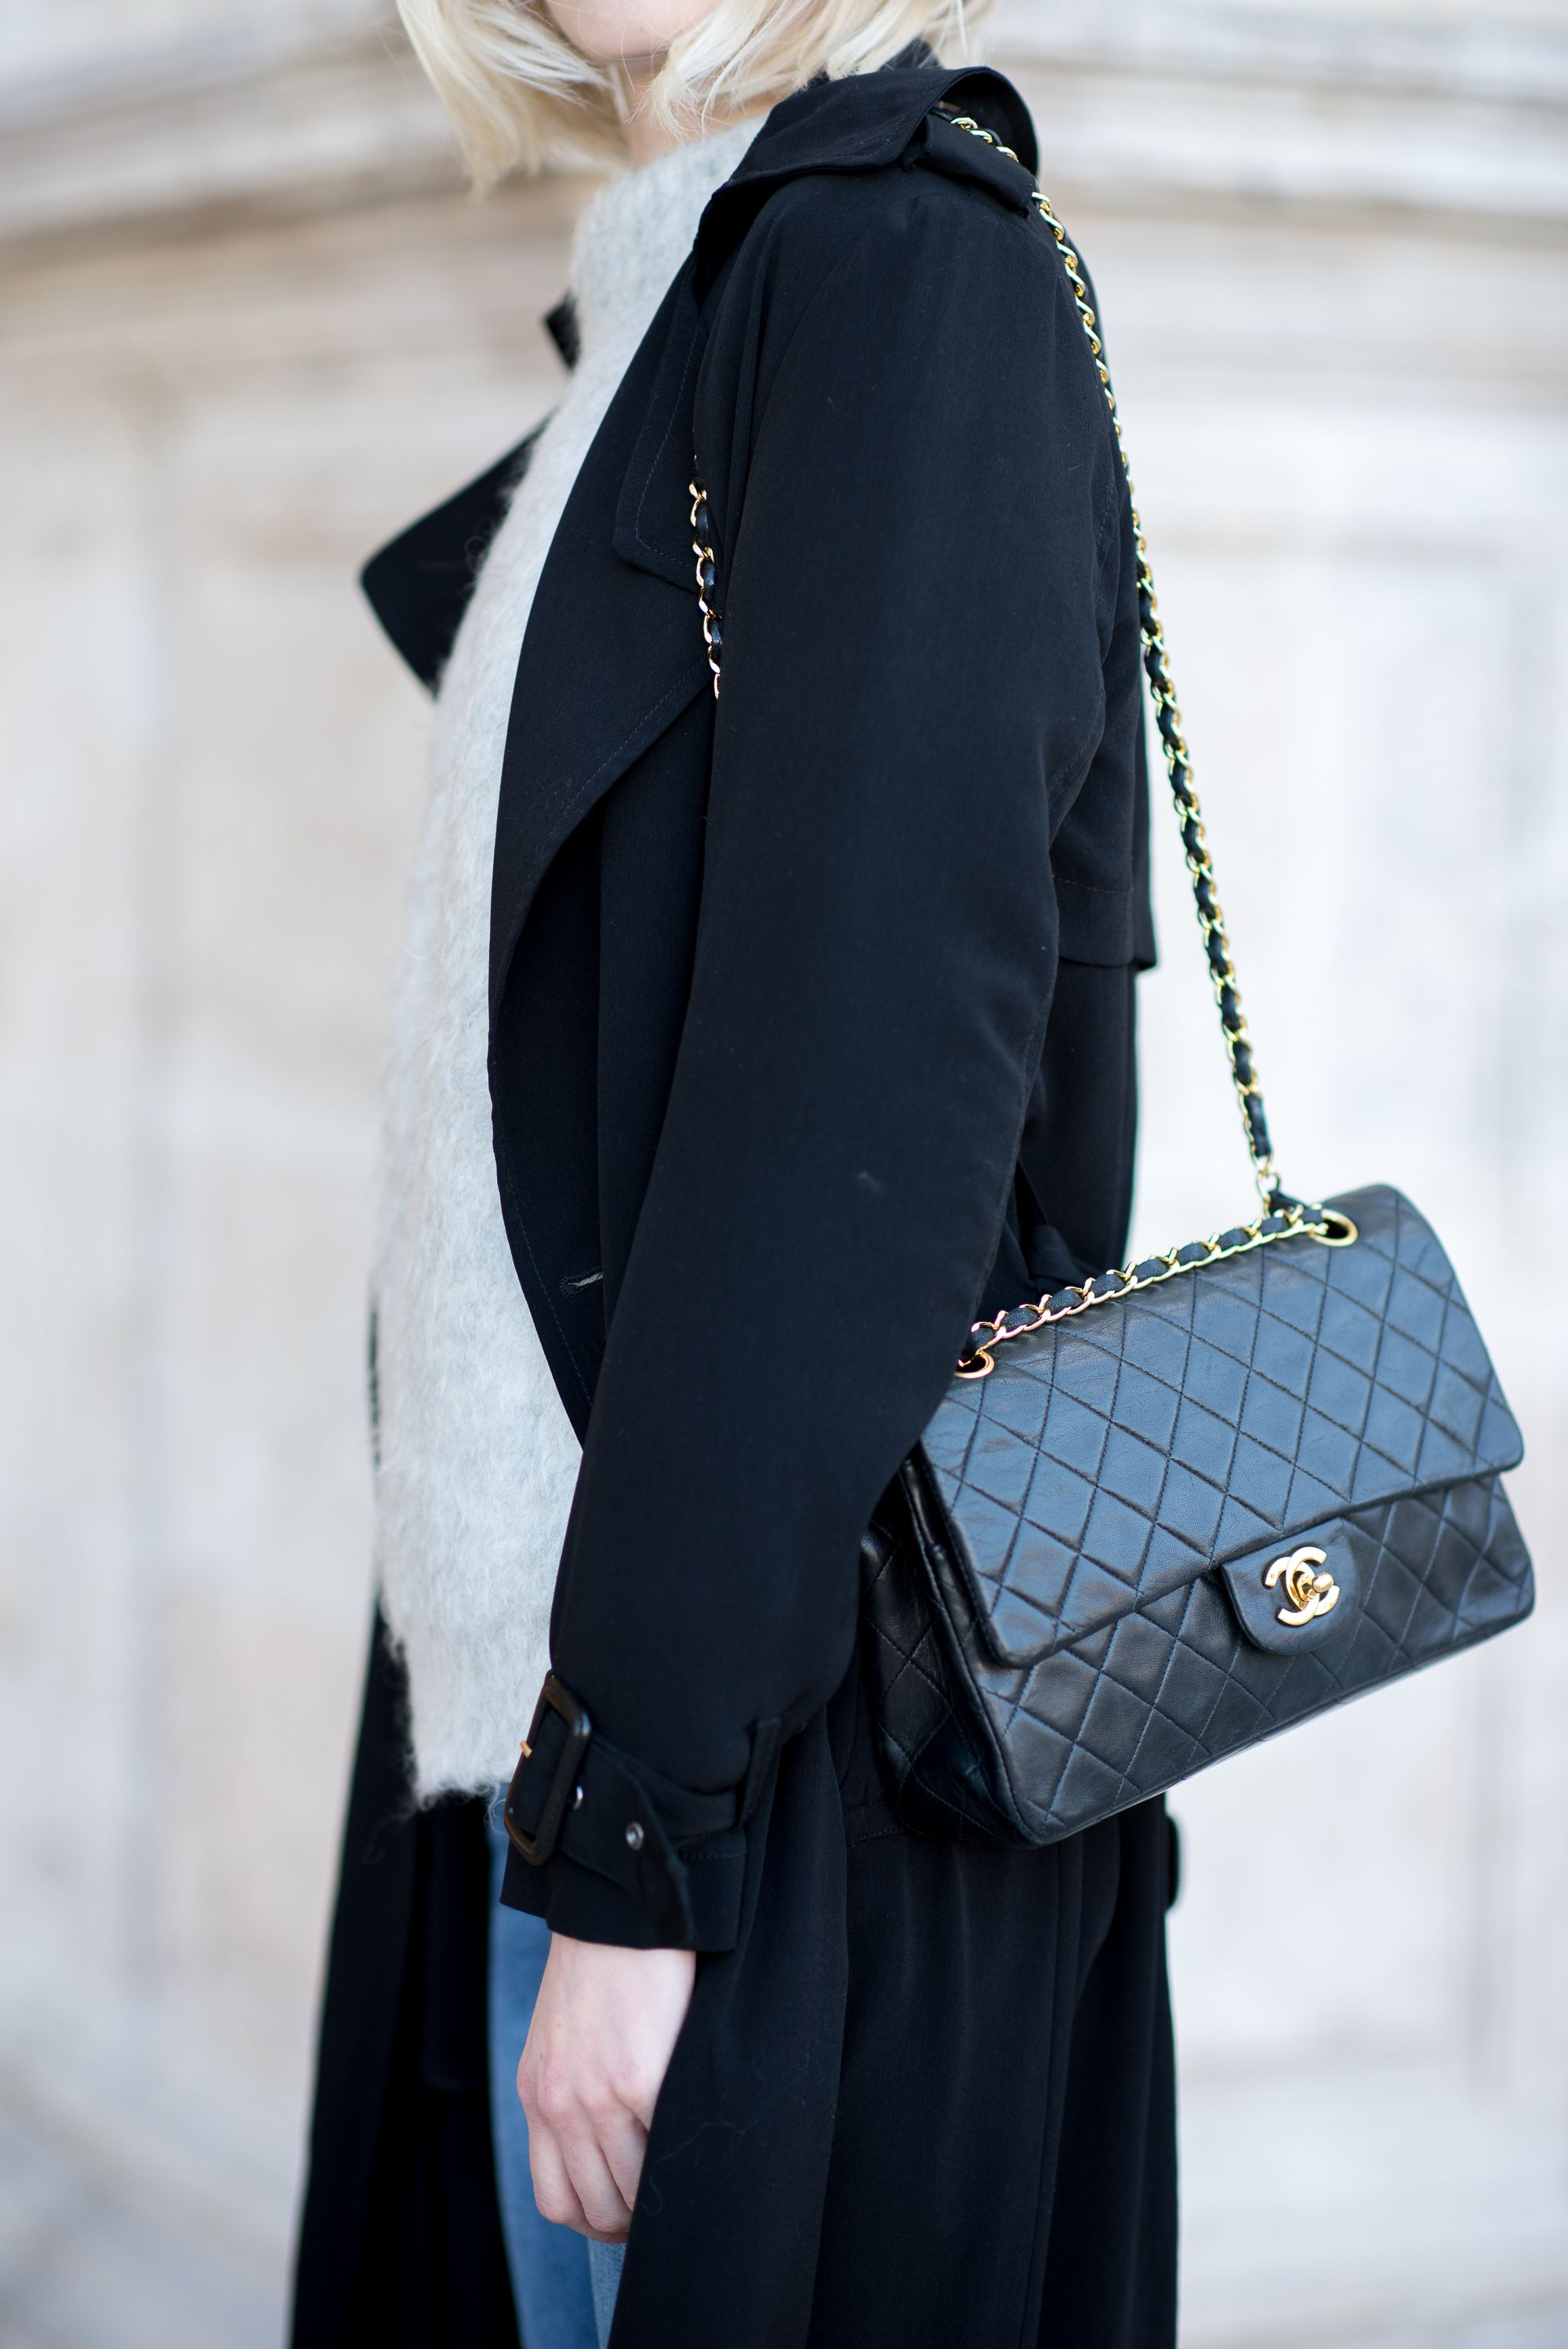 Vintage Chanel Flap bag / Anna Sofia - Style Plaza